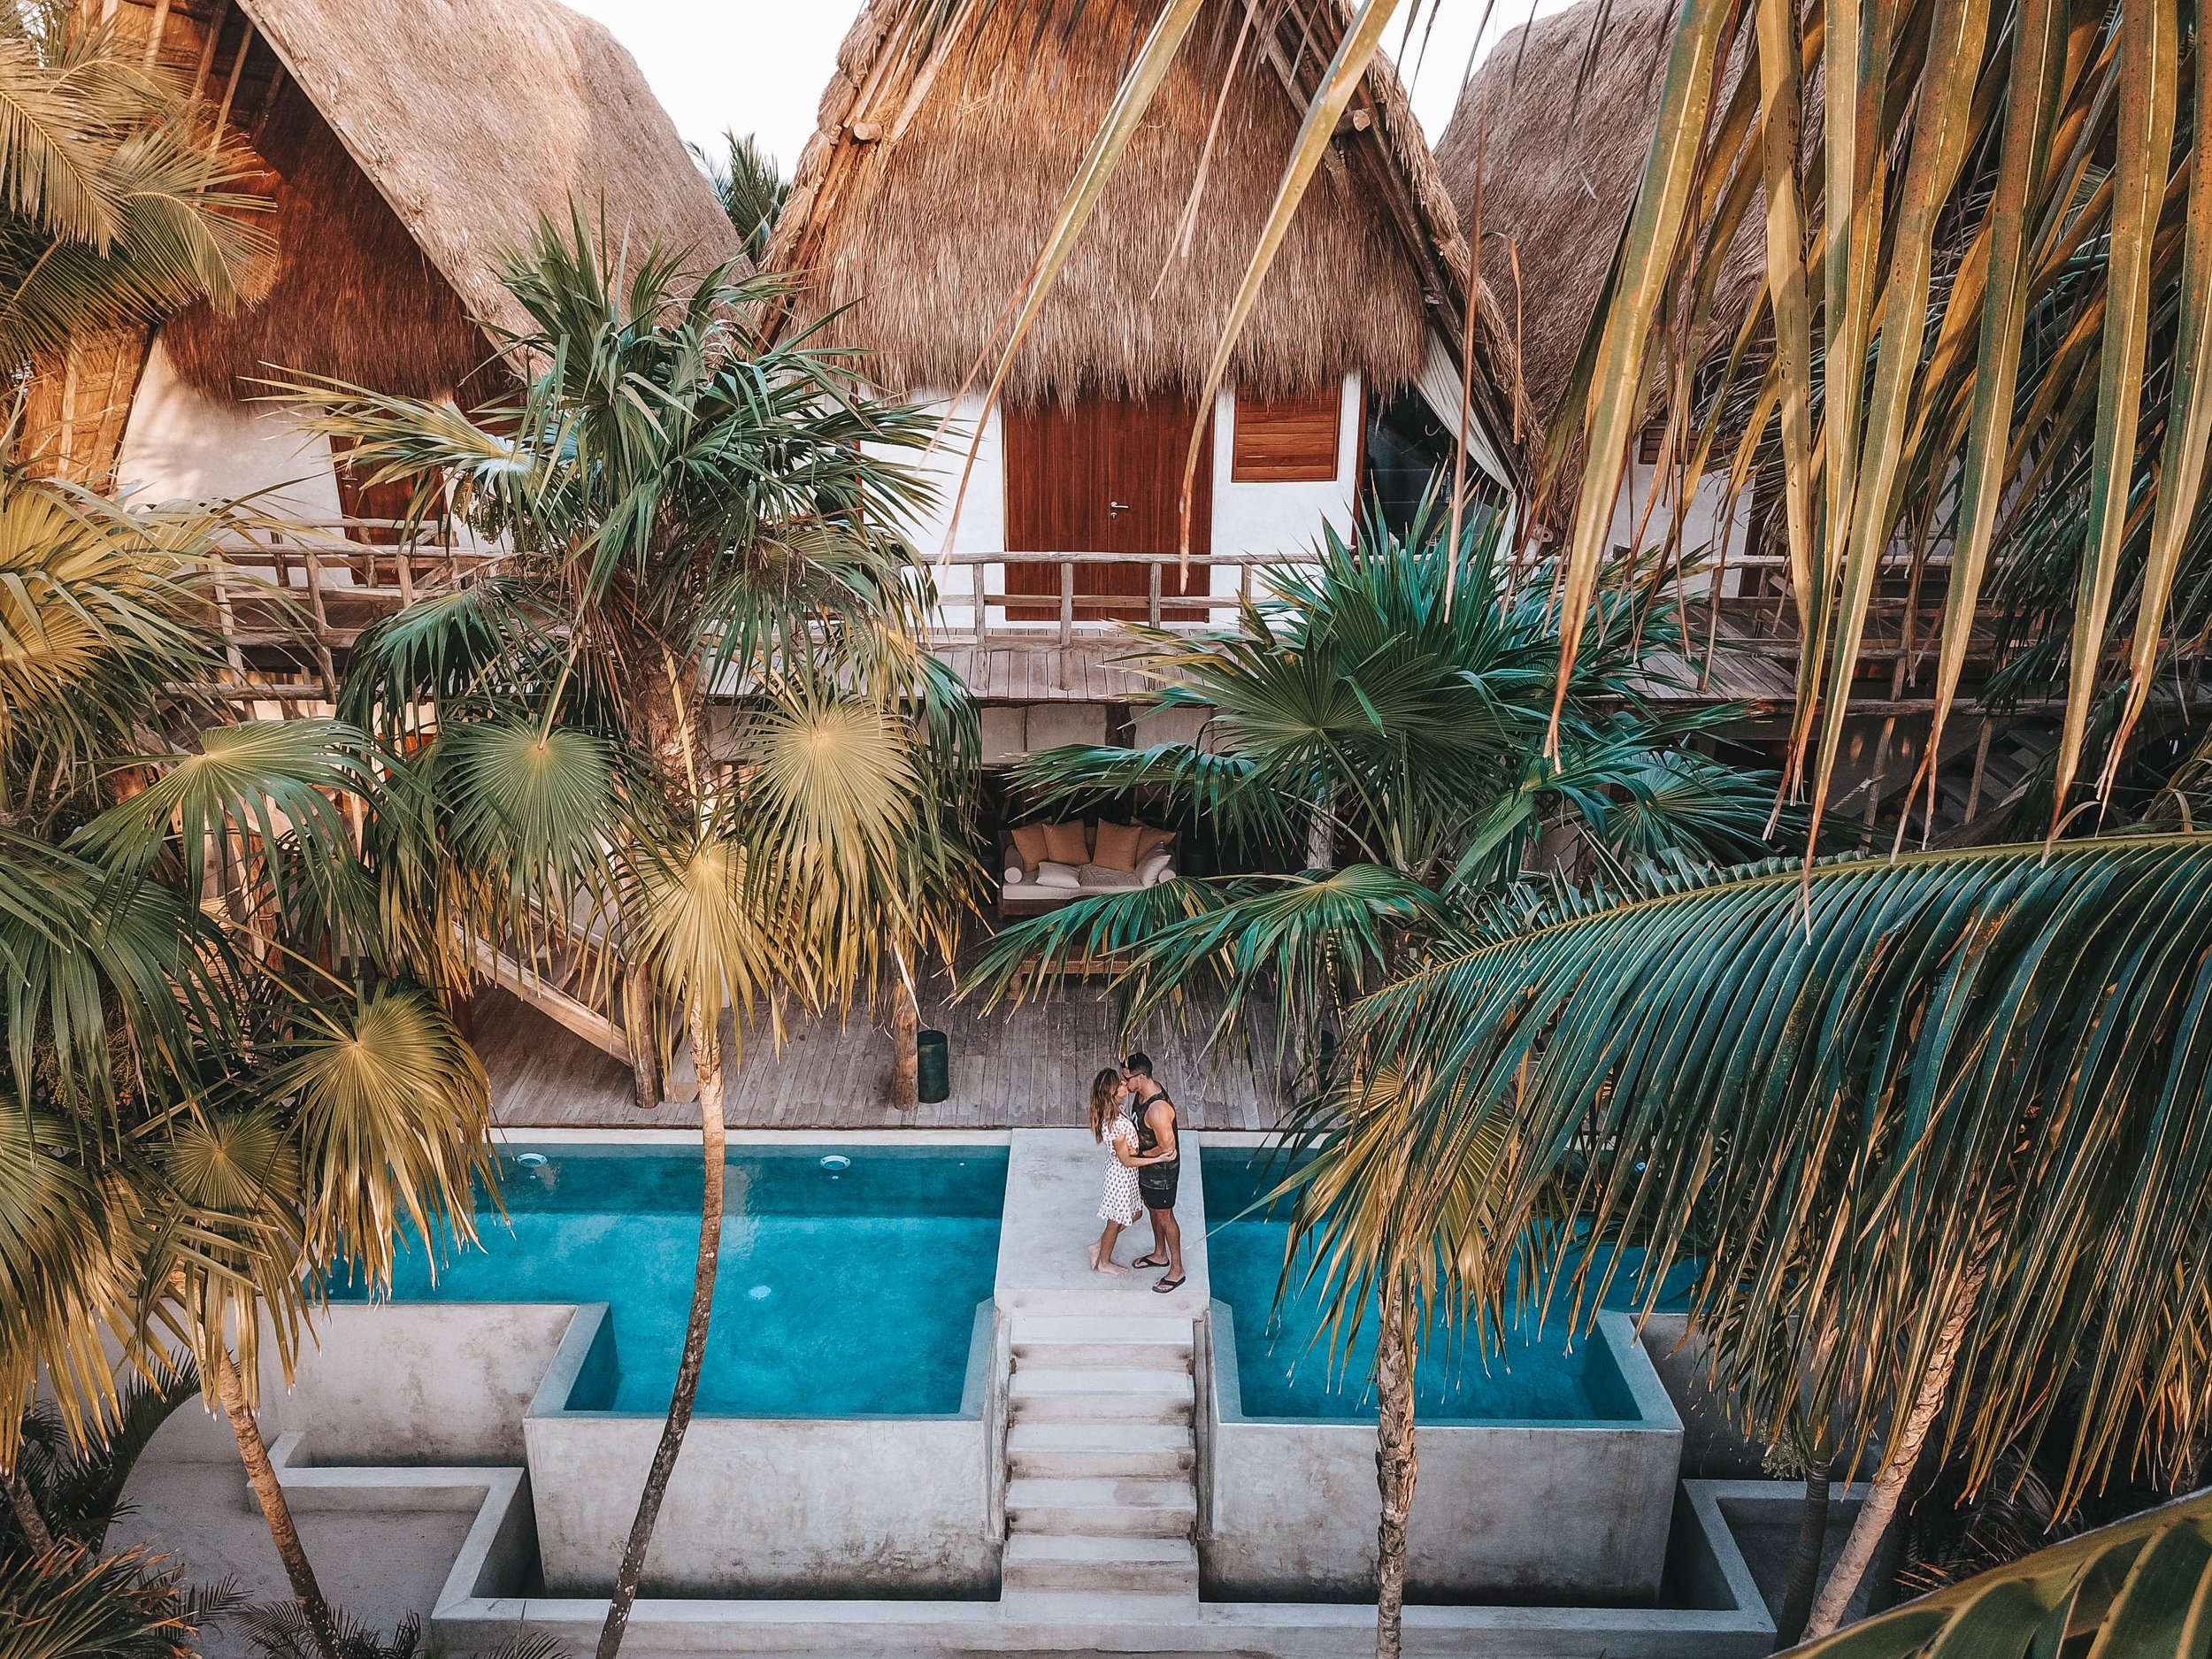 image of couple traveling and staying at a tropical resort with palm trees